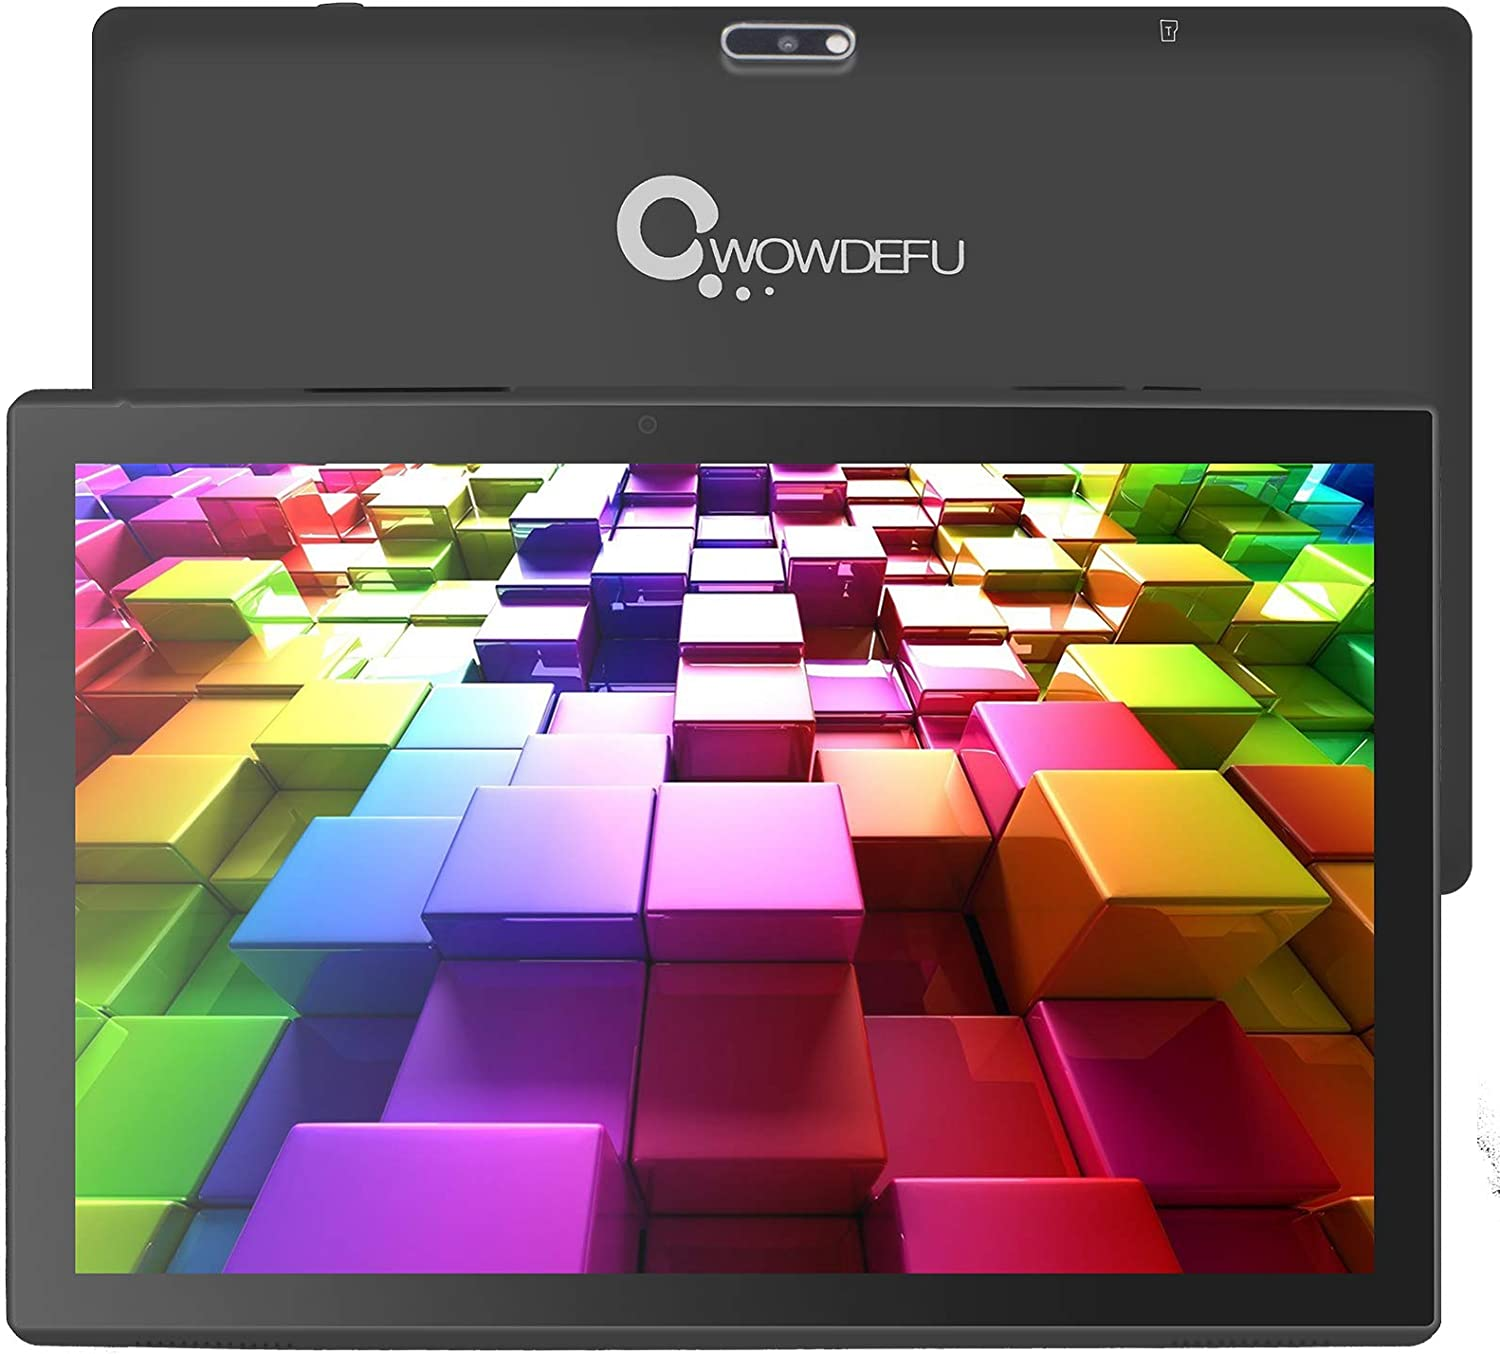 Android Tablet 10.1 inch 32GB Storage 2GB RAM, Android 10.0 WiFi Tablets Voice Control with Google Assistant, Dual Speakers, 1280x800 IPS HD Display, Dual Camera, Black